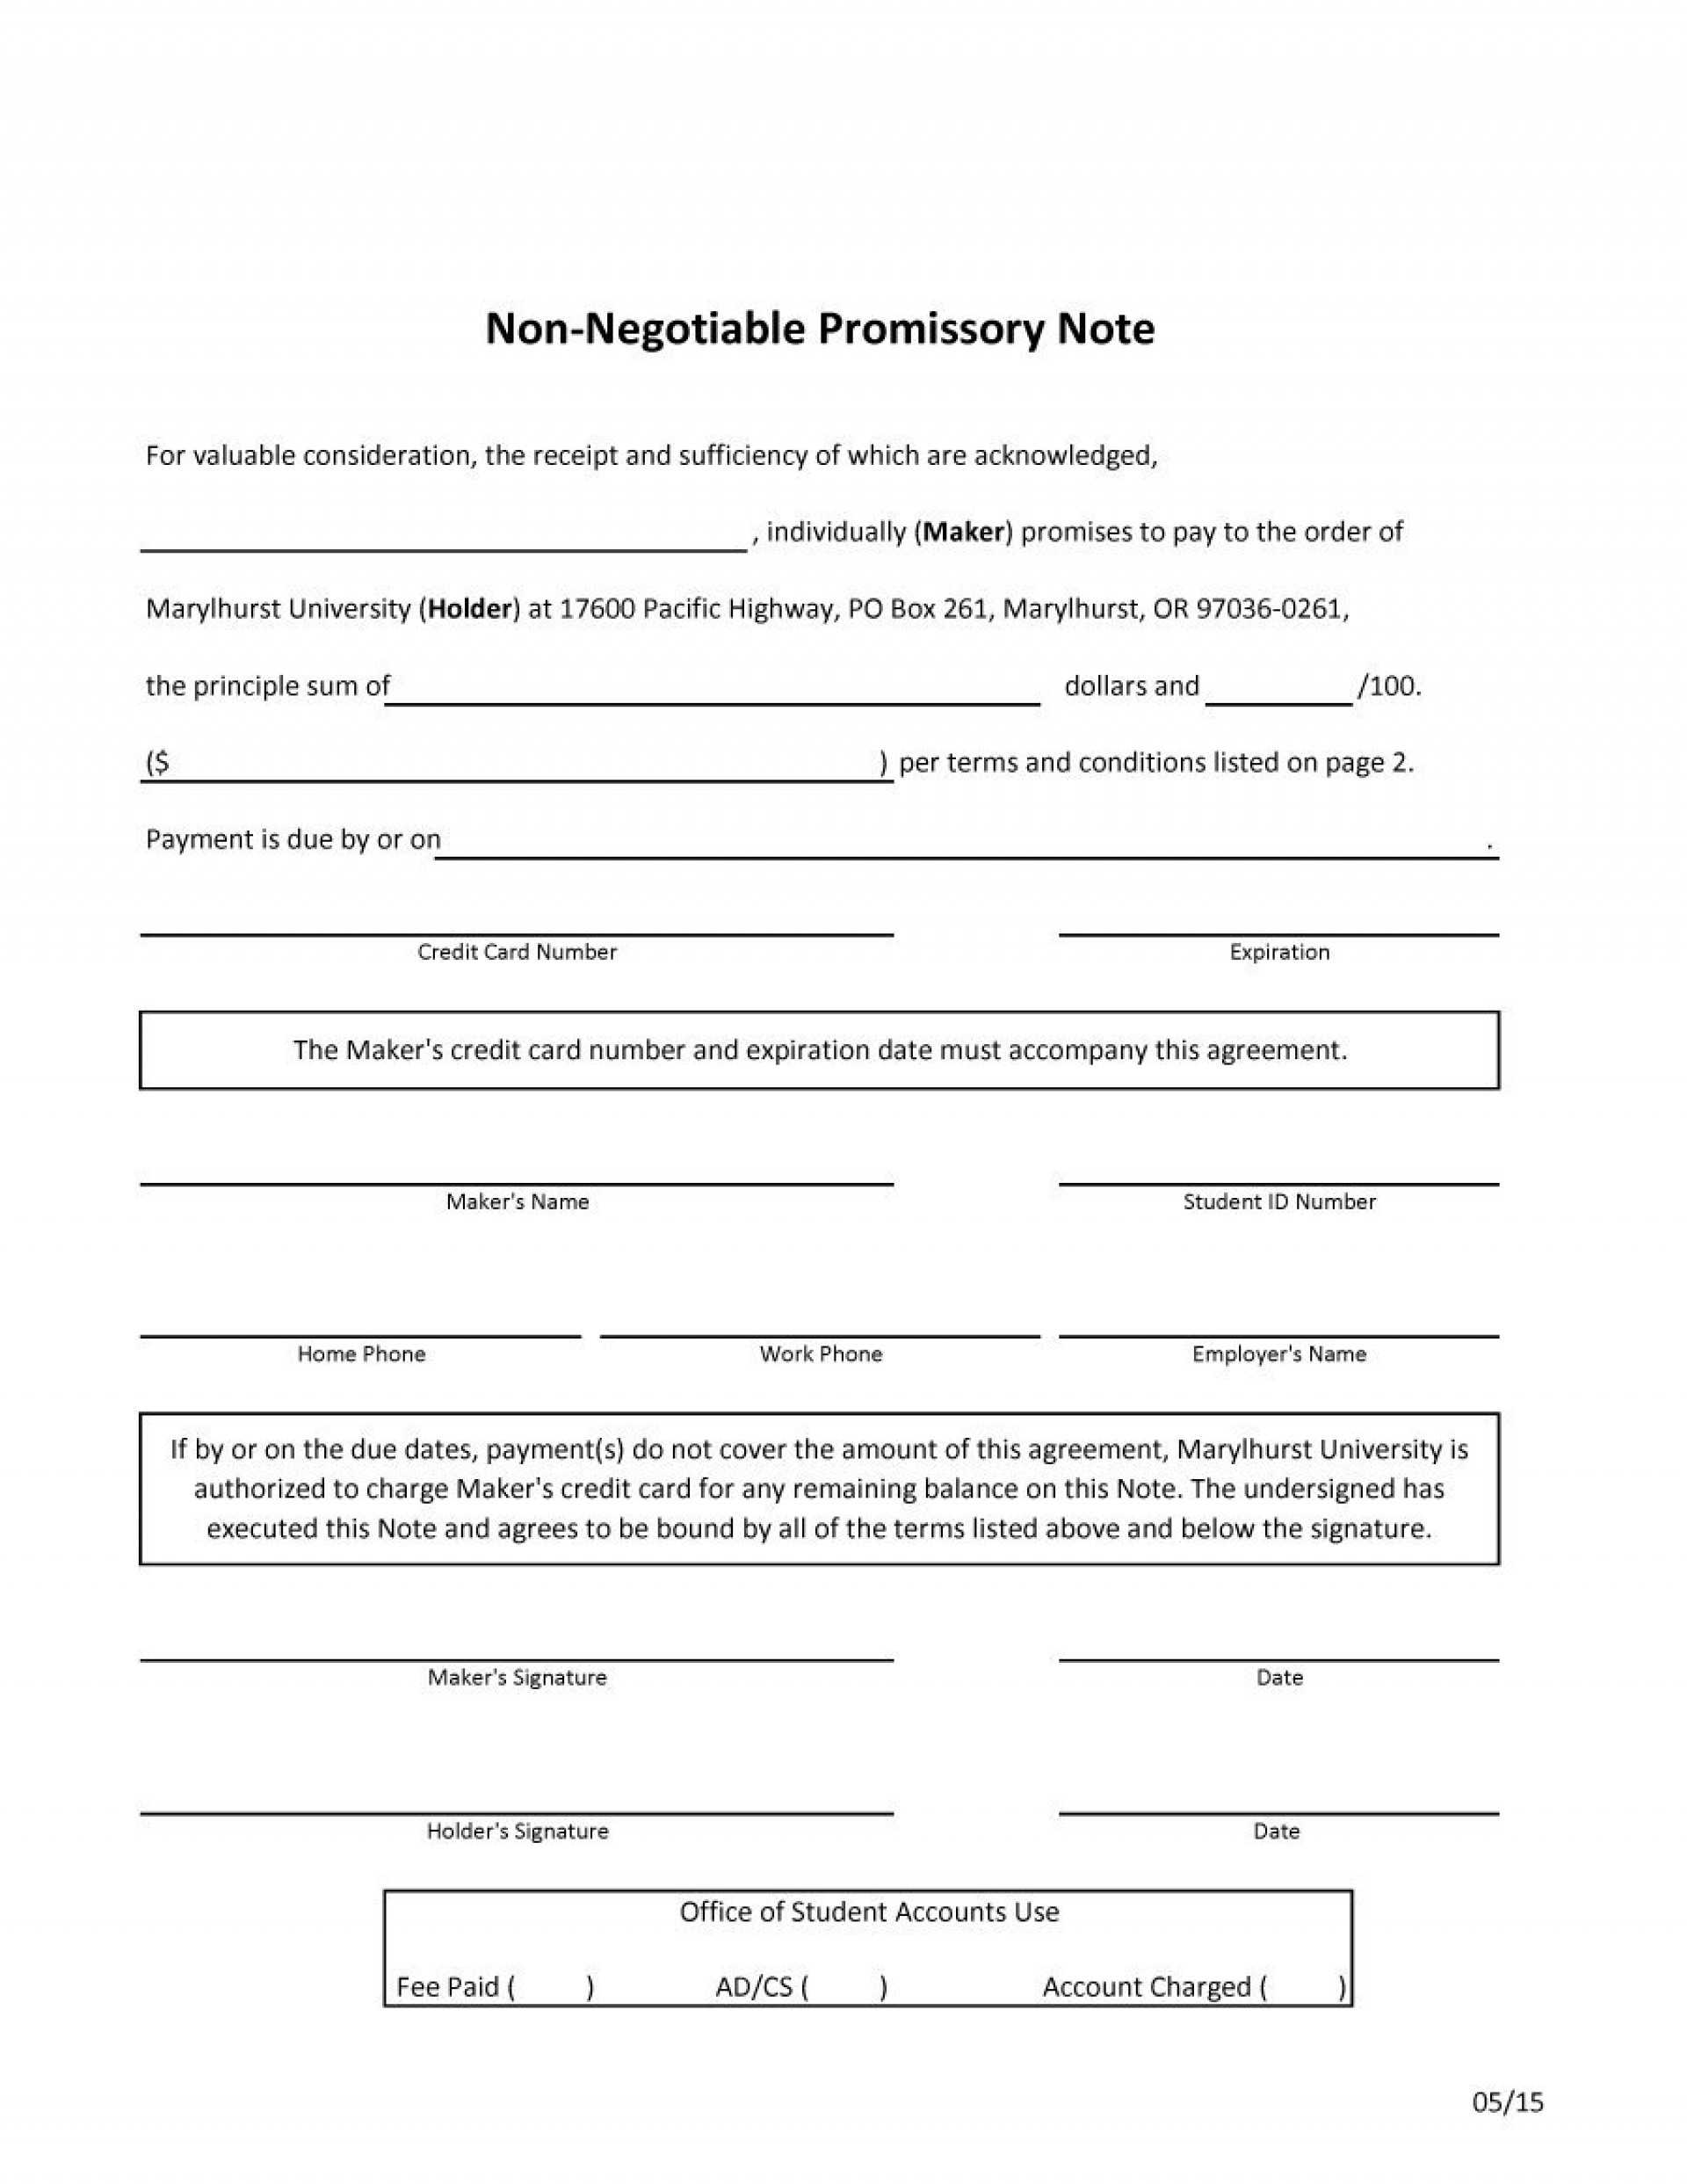 010 Template Ideas Northcarolina Promissory Note Pdf Inside Credit Note Template On Word Download